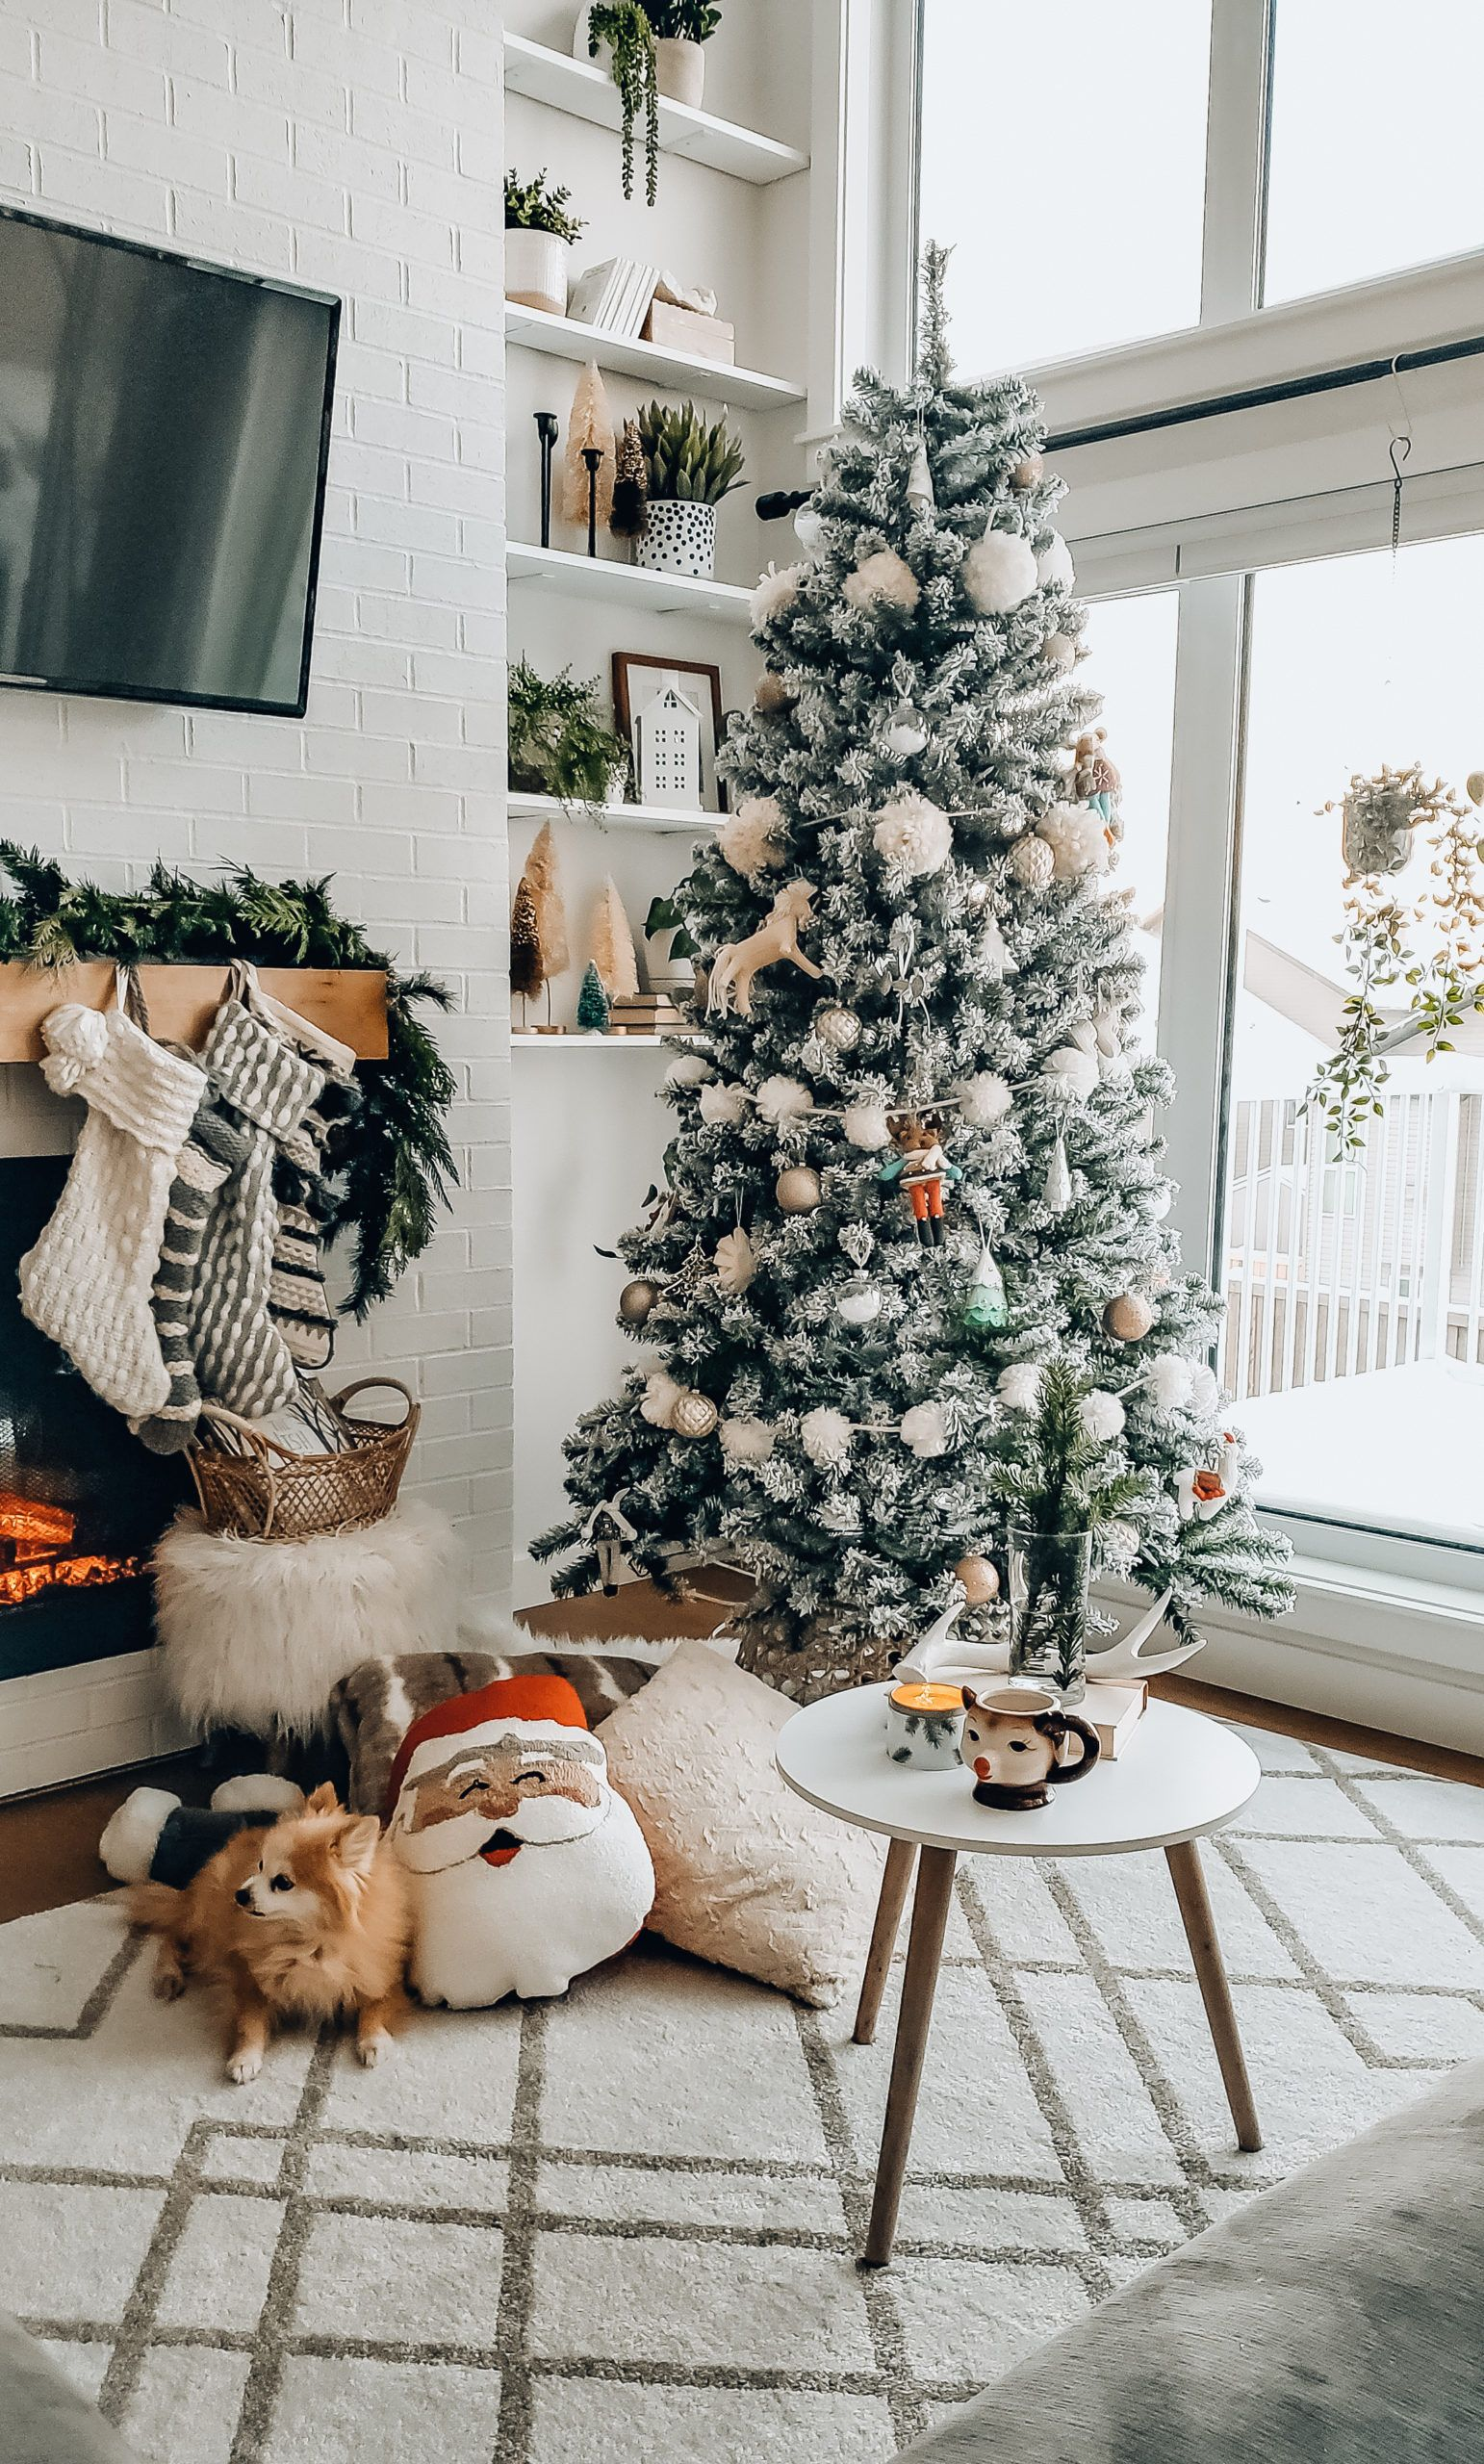 A Hygge Christmas Home Tour The Blush Home Cozy Scandinavian Holiday Decor In 2020 Scandinavian Holiday Decor Christmas Decor Diy Scandinavian Christmas Decorations